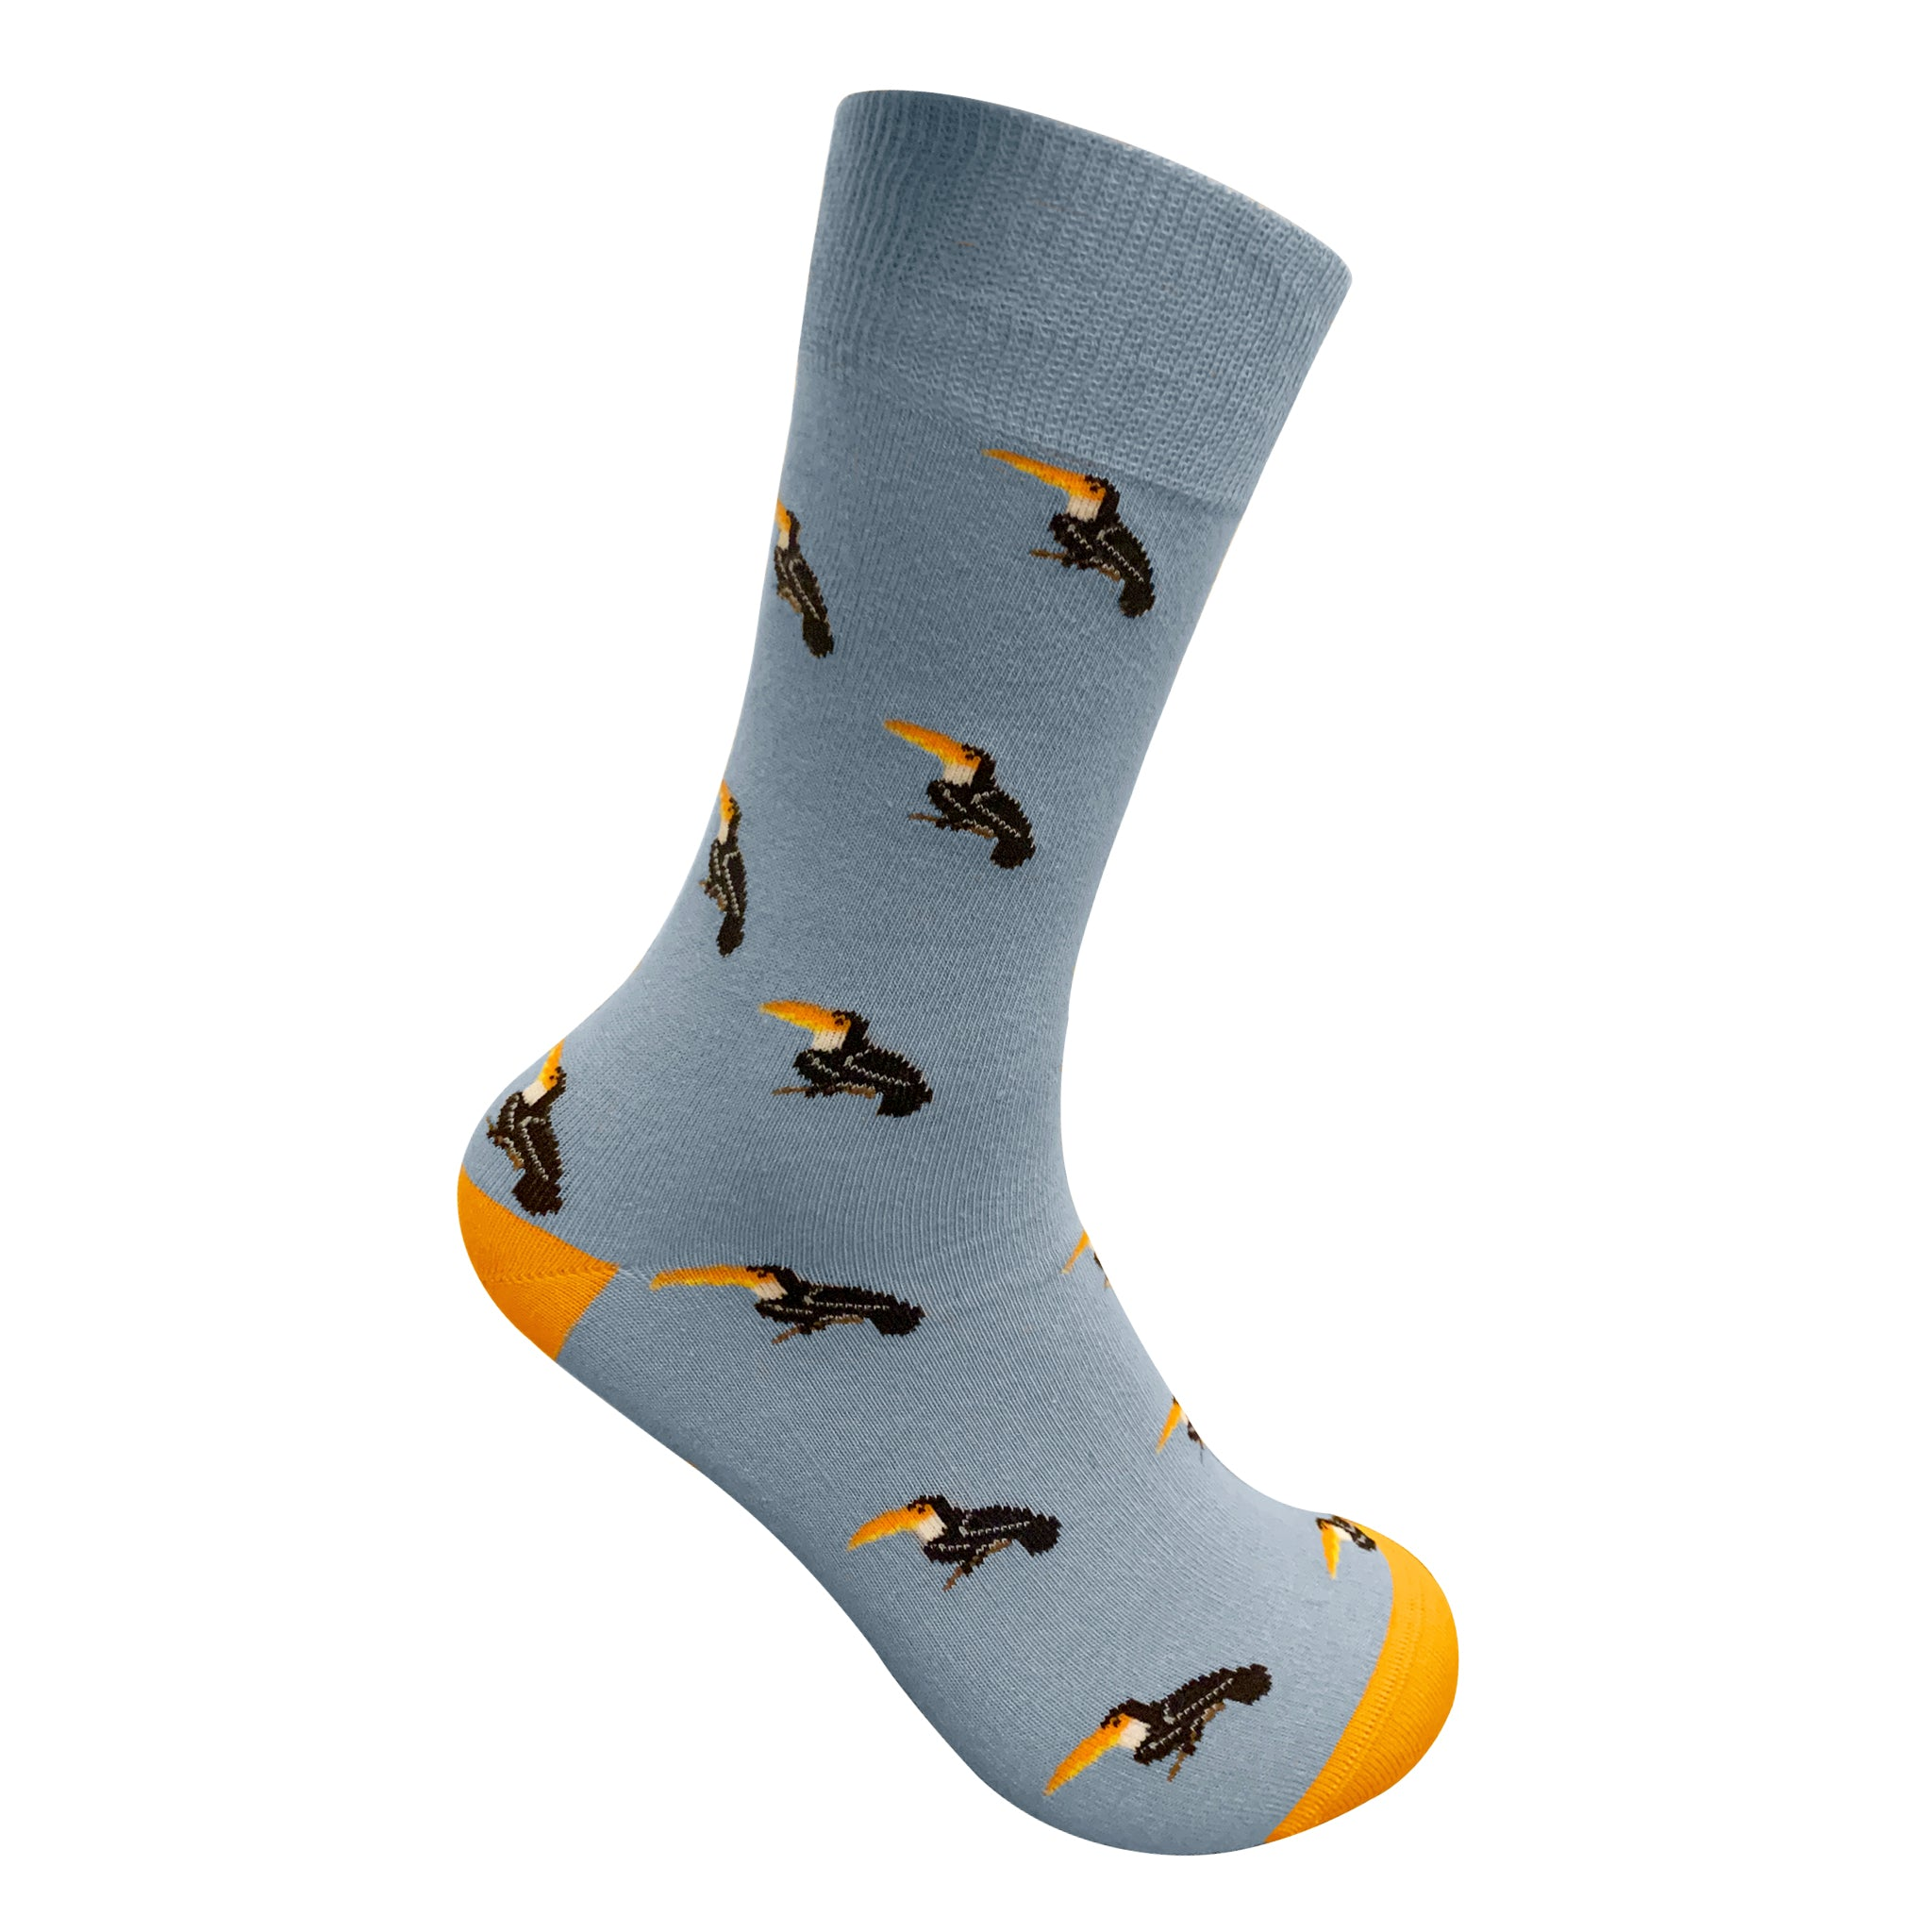 BIRDS OF A FEATHER SOCKS| Men socks - Mint & Oak